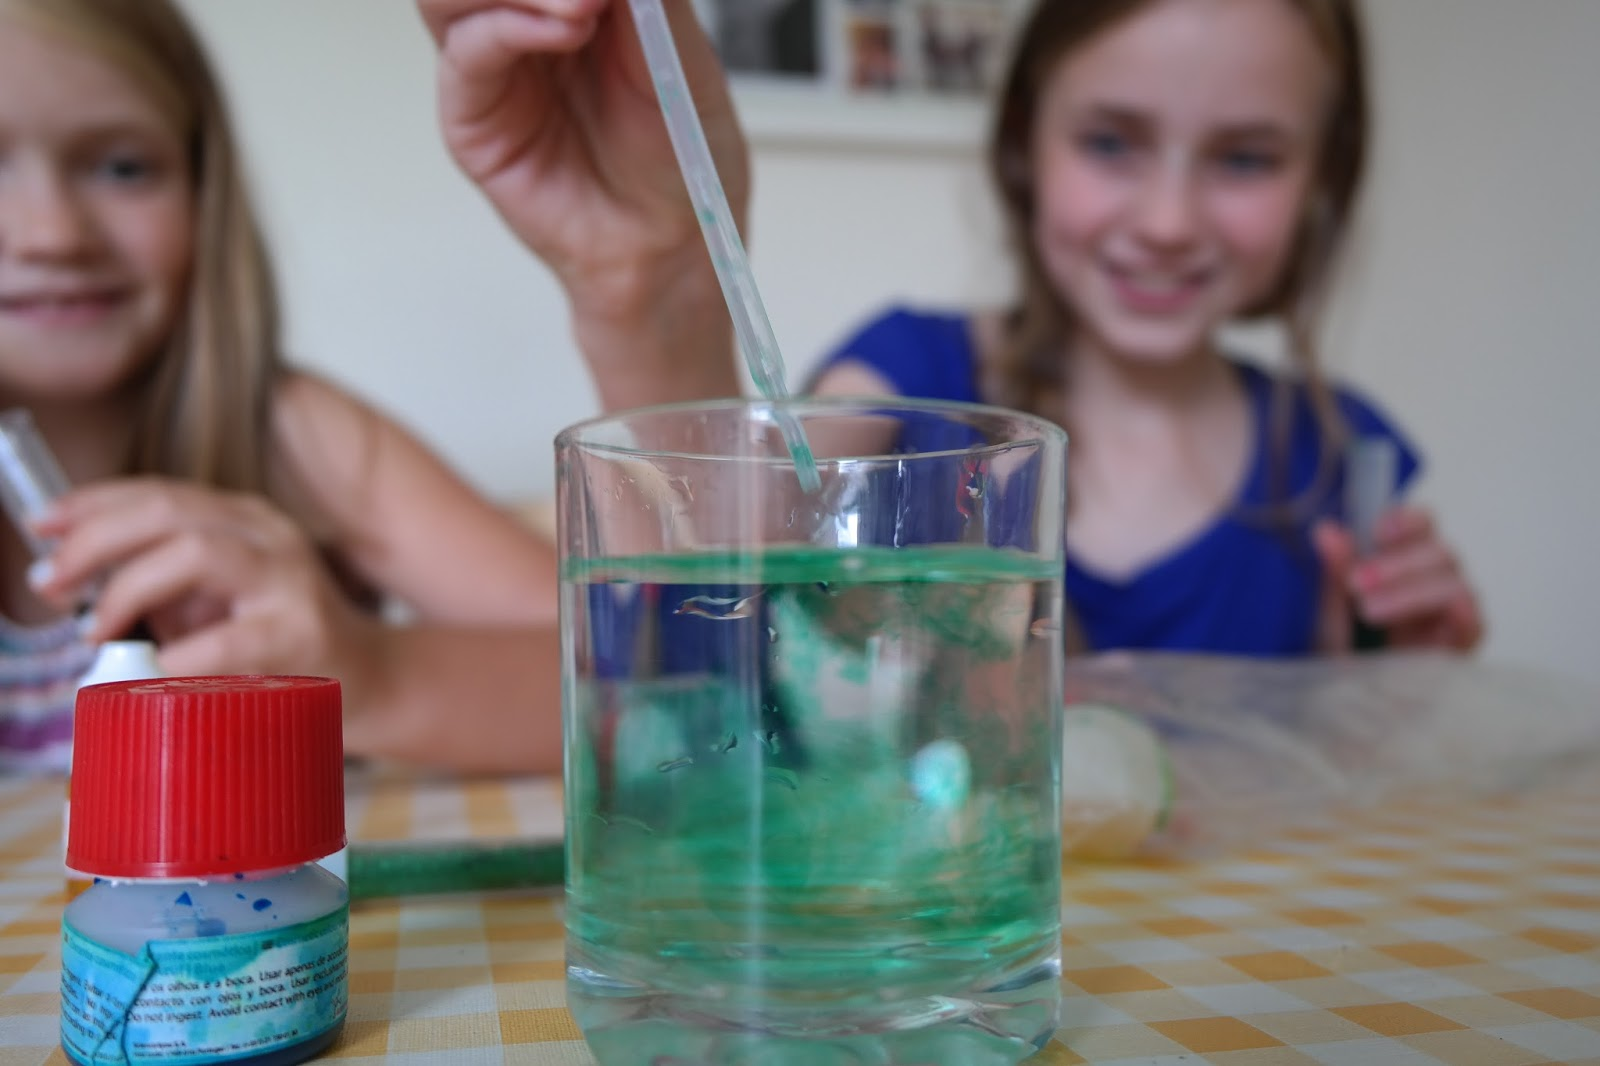 Science4You Soap Factory - A Review - Kate Takes 5